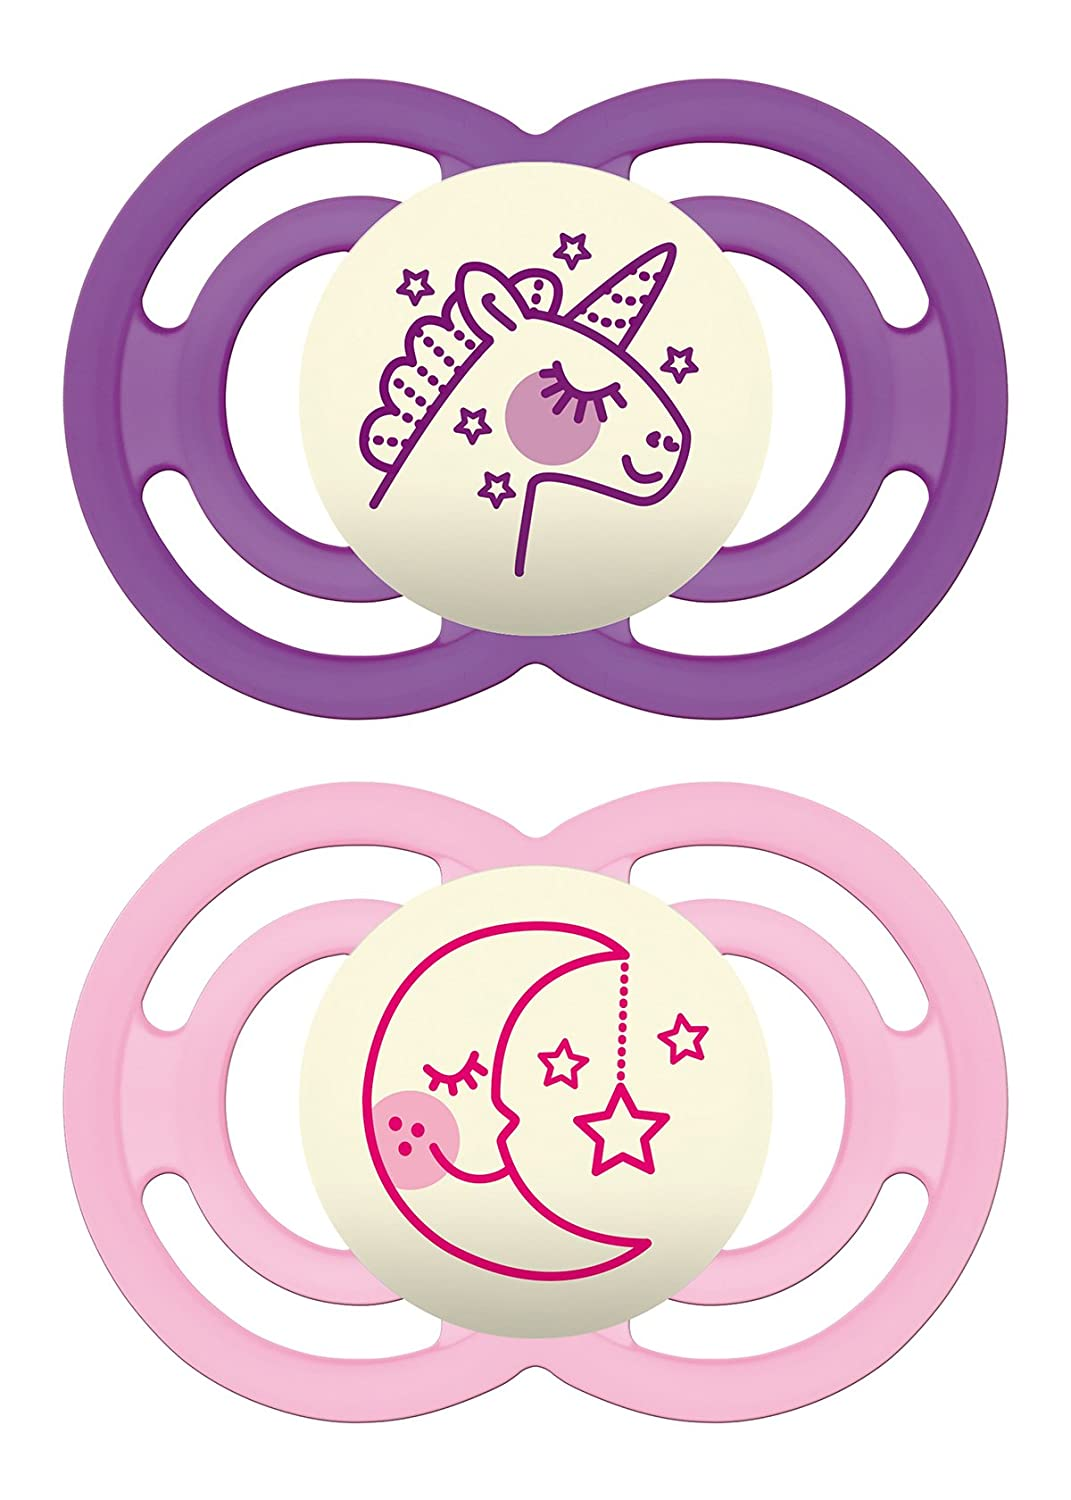 MAM Glow in The Dark Pacifiers, Baby Pacifier 6+ Months, Best Pacifier for Breastfed Babies, Premium Comfort and Oral Care 'Perfect' Collection, Girl, 2-Count 3774-012-0-1